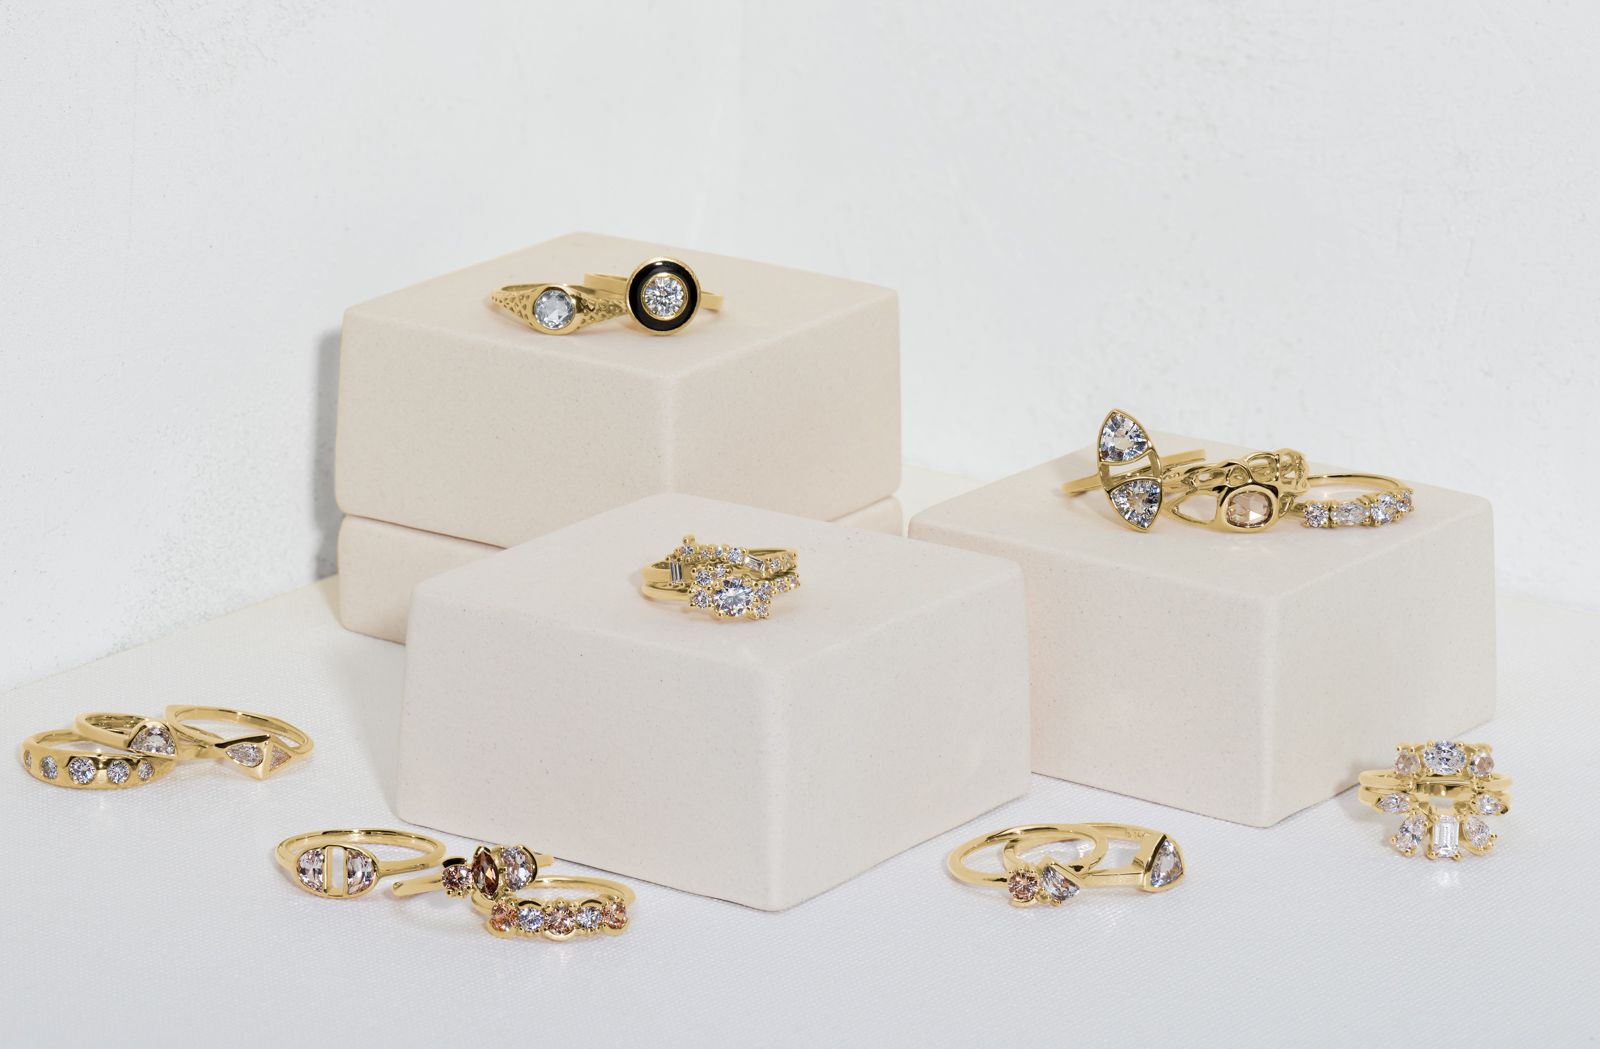 Sustainable Wedding and Engagement Rings by Bario Neal stacked on boxes against a white background.